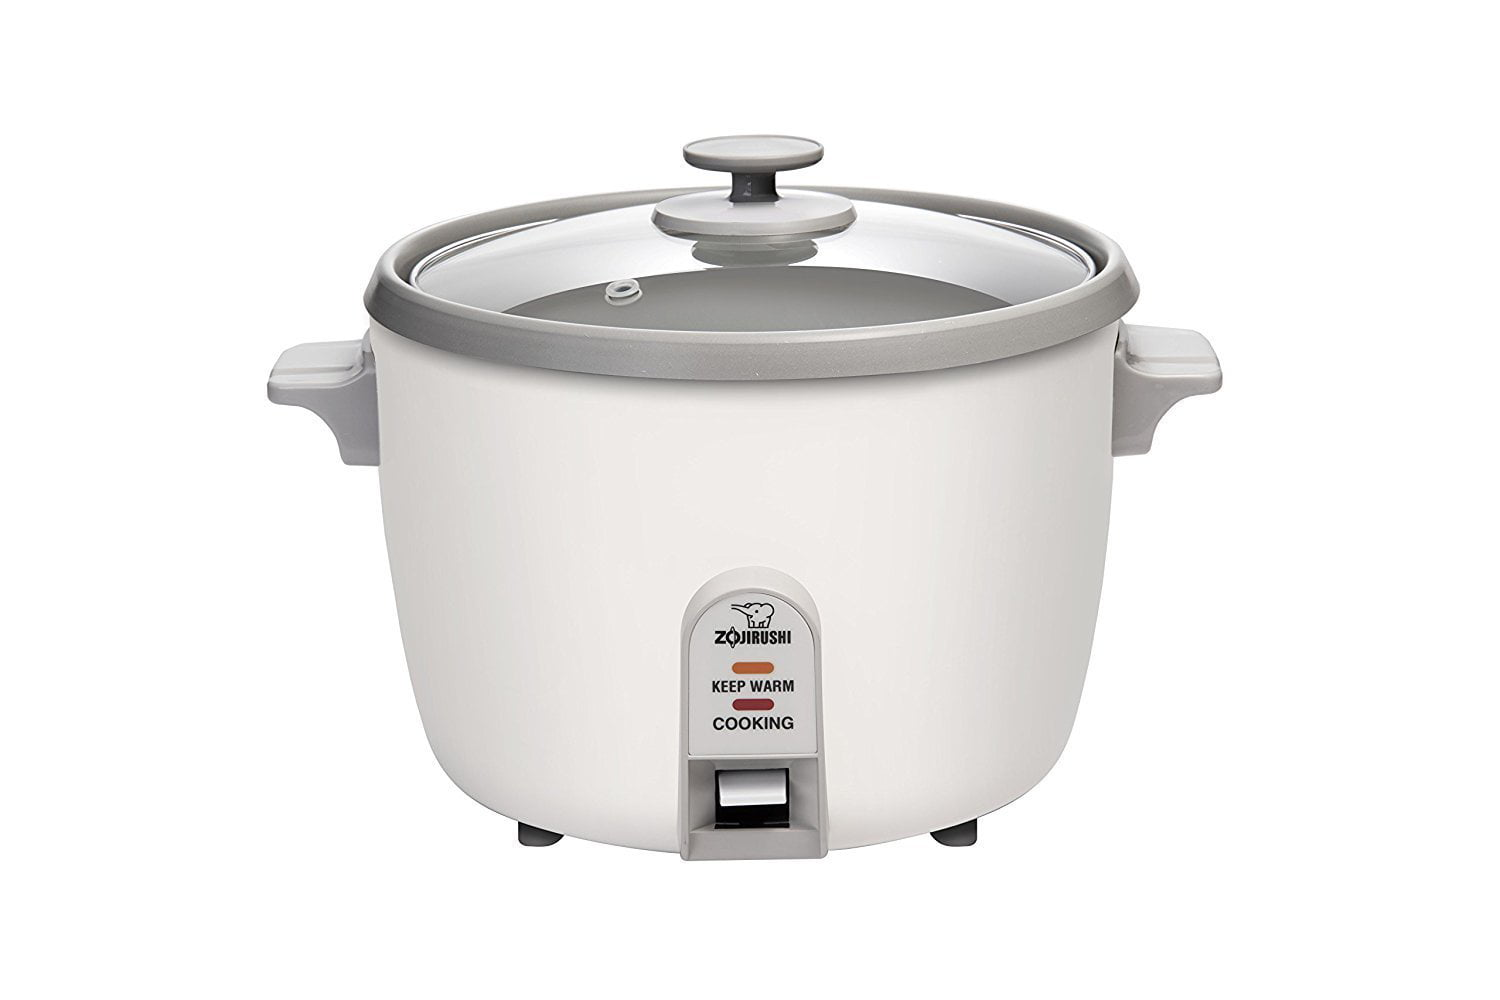 Zojirushi Rice Cooker And Steamer  10 Cup